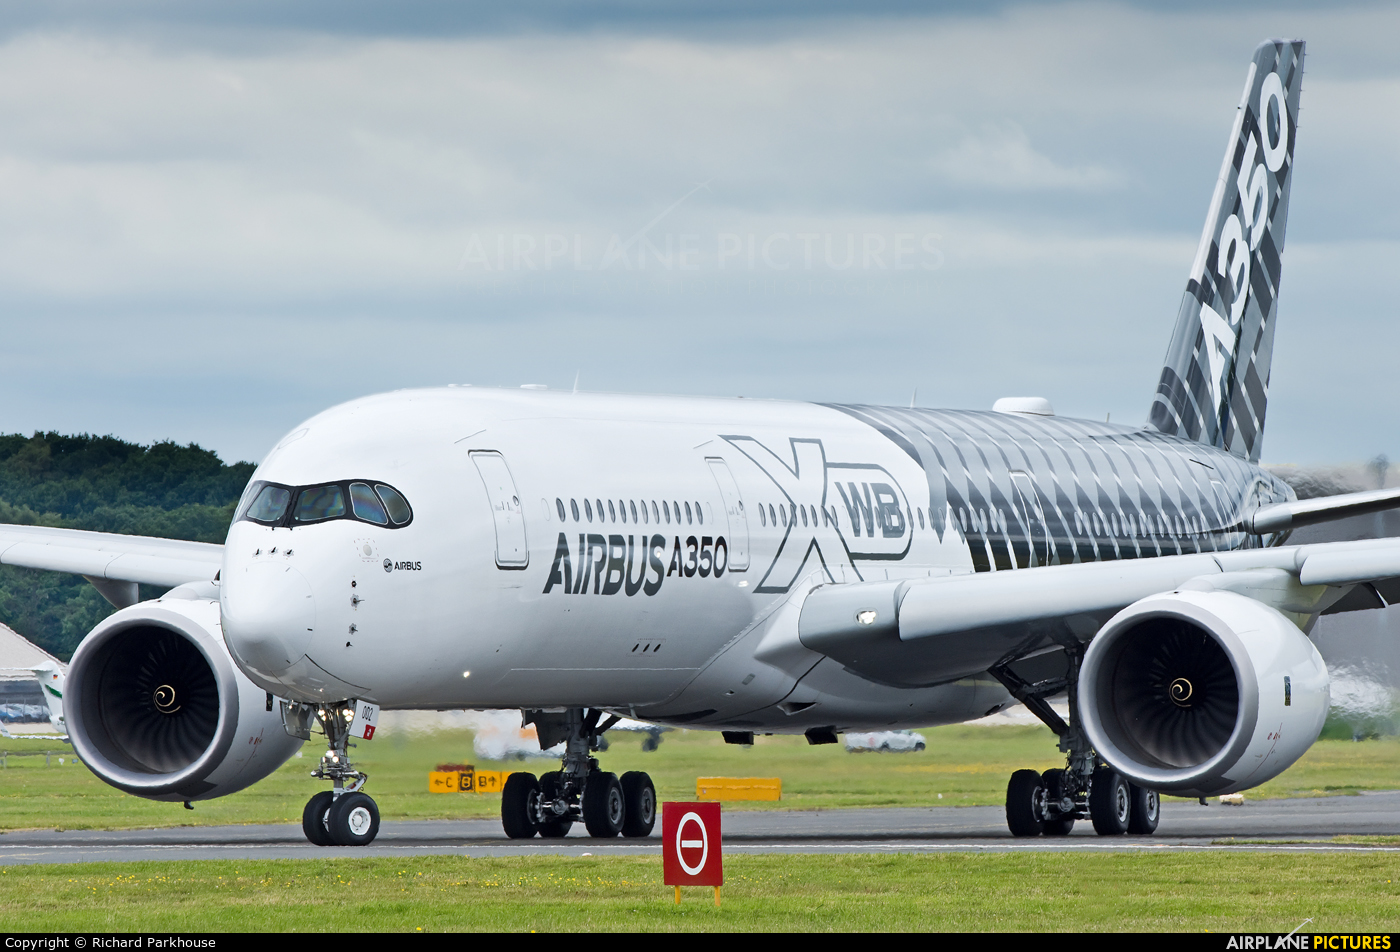 Airbus Industrie F-WWCF aircraft at Farnborough